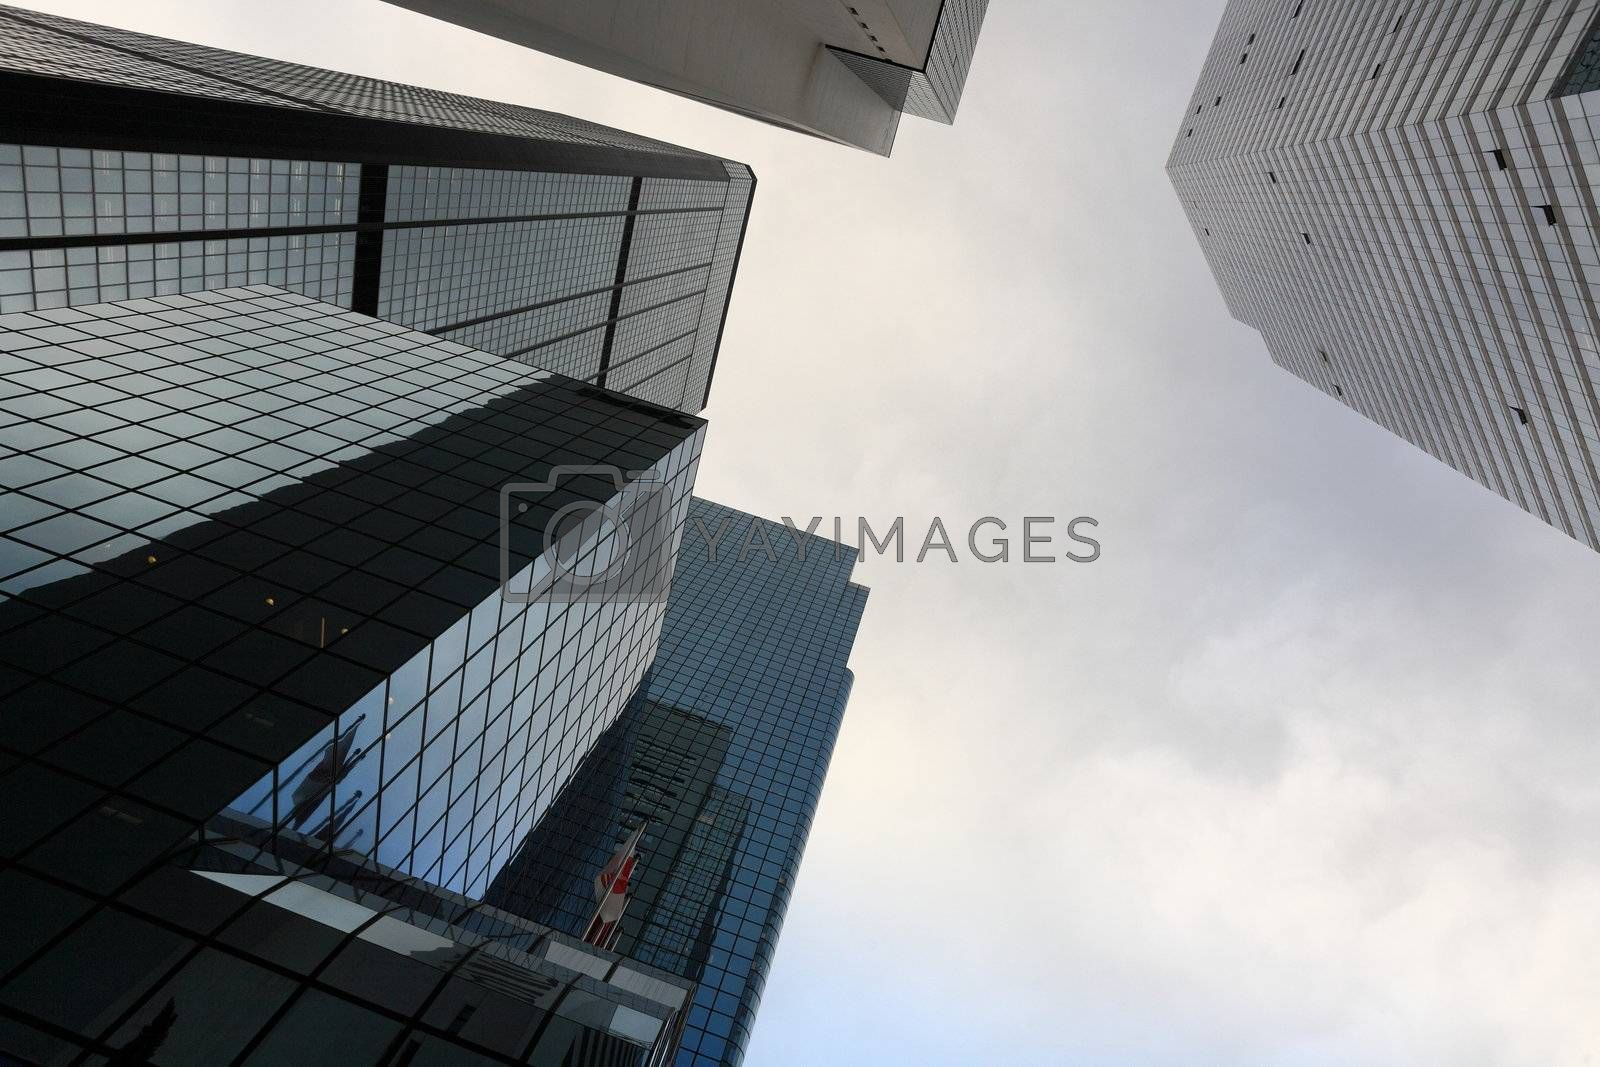 Royalty free image of High business buildings by leungchopan